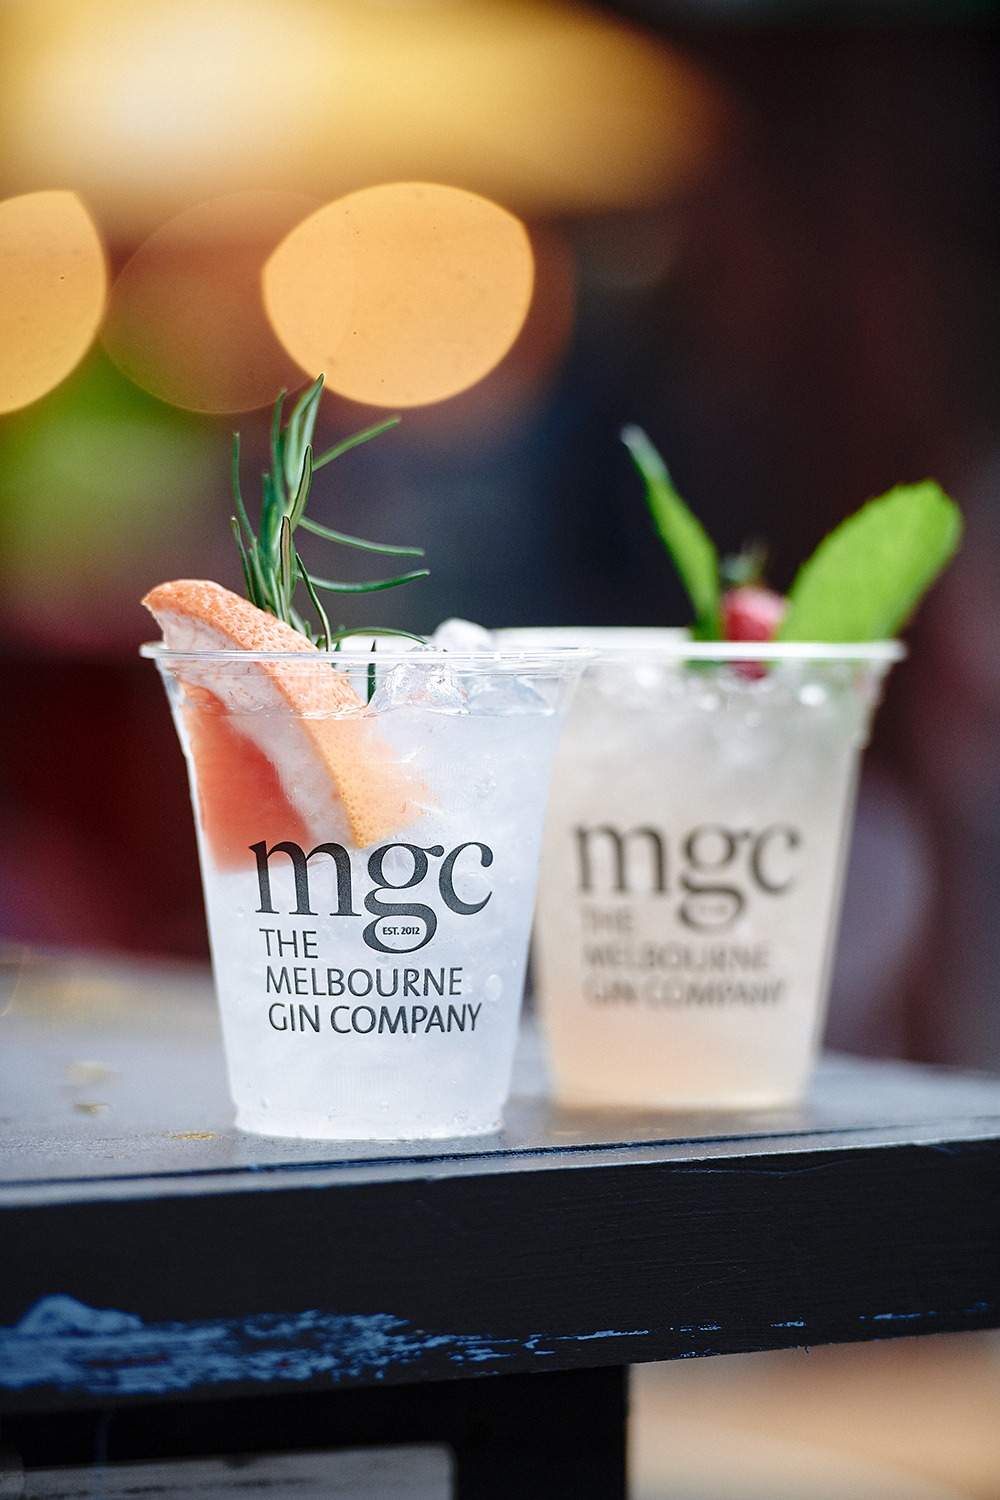 Melbourne Gin company at the night markets